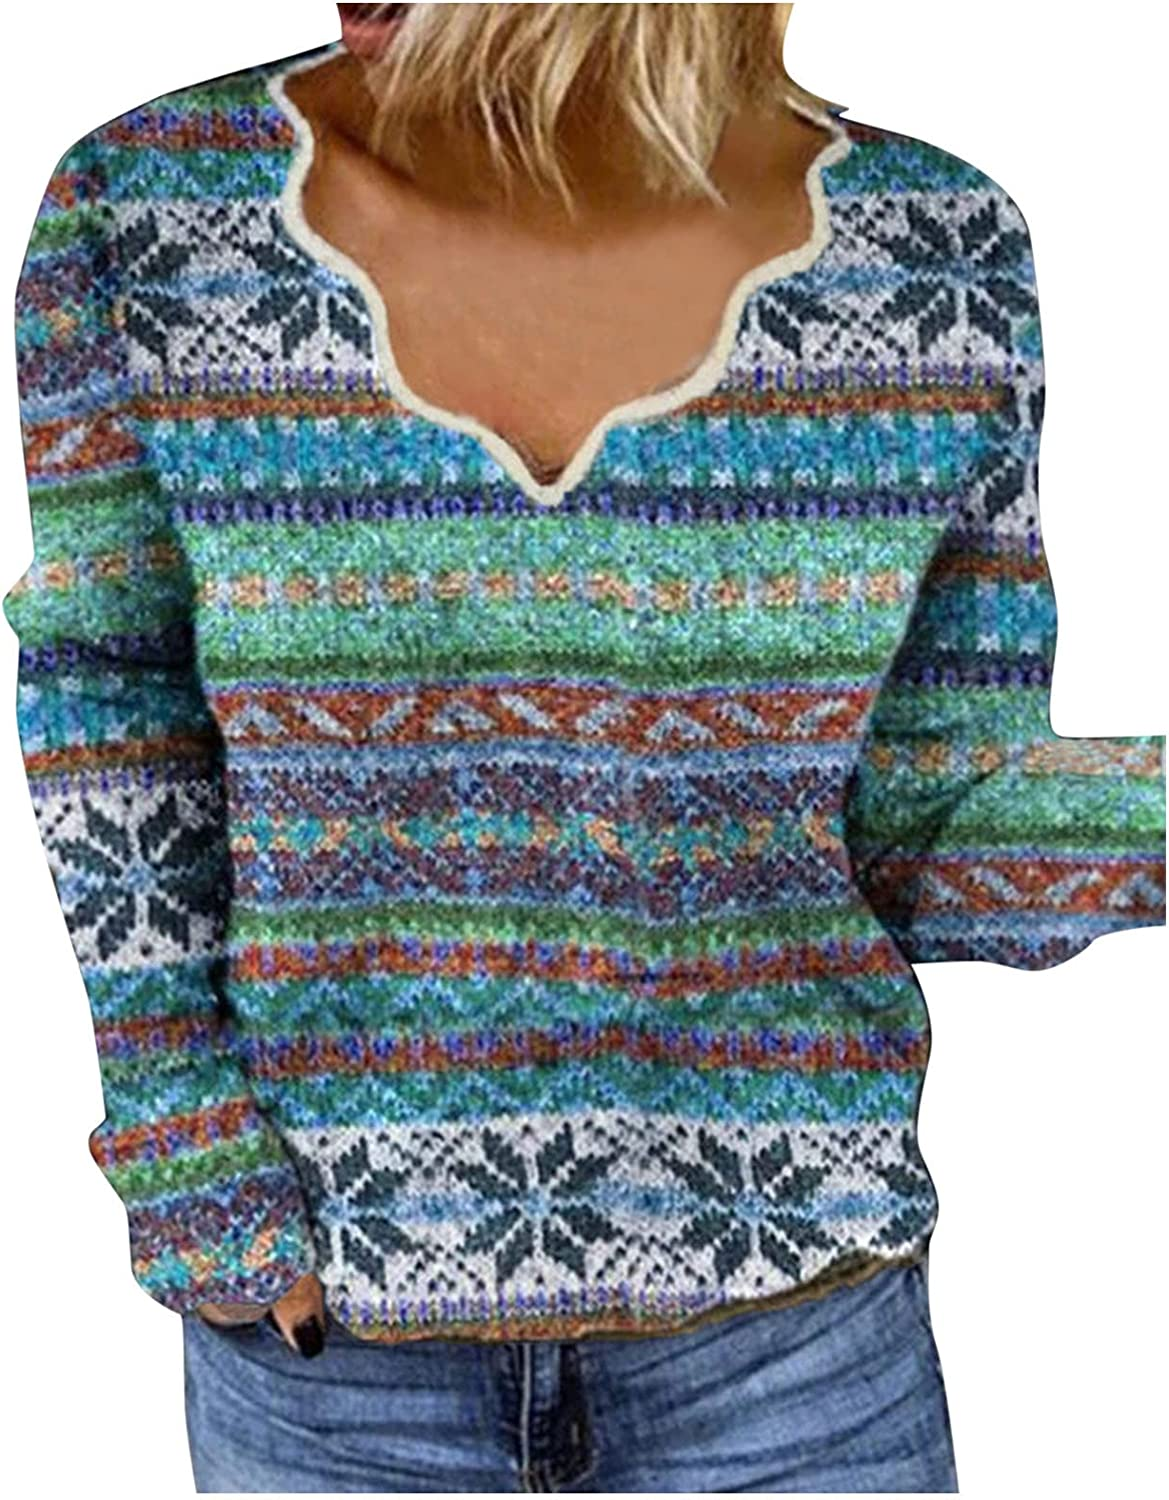 Women V Neck Boho Printed Sweater Stripe Sleeve Fleece Animer and price revision Long Max 61% OFF